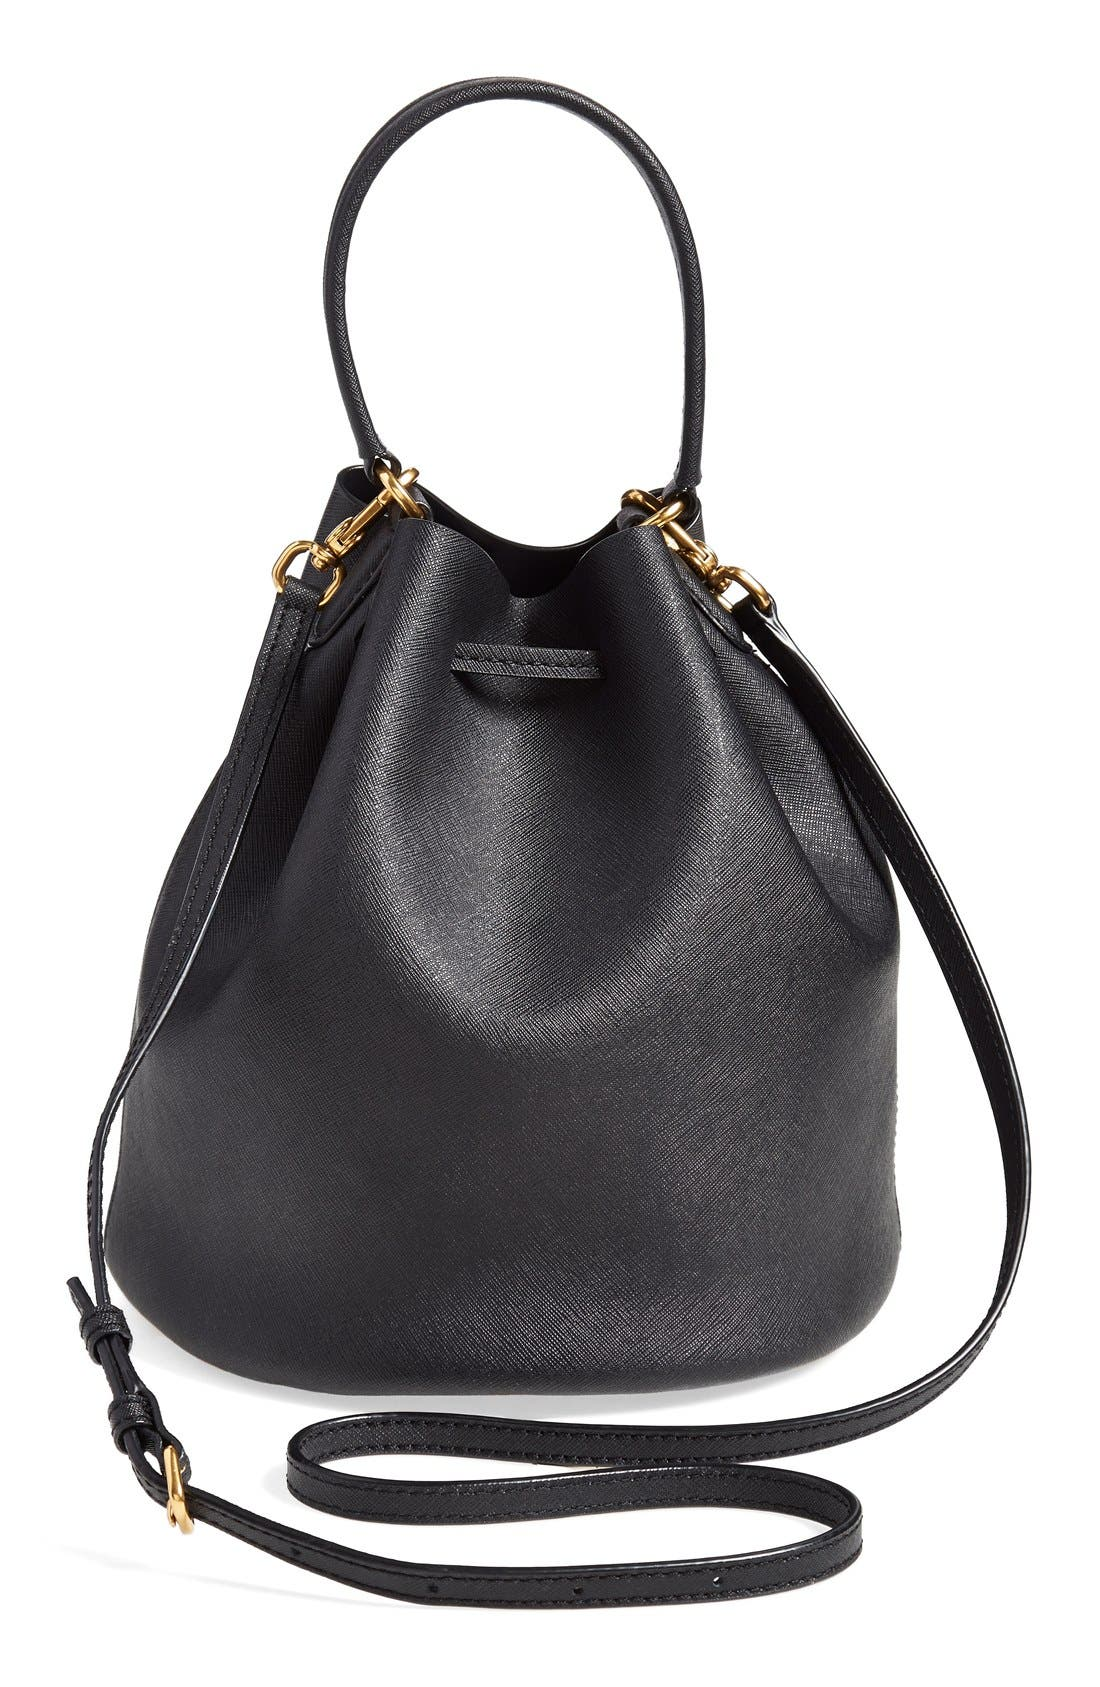 MARC BY MARC JACOBS 'Metropoli' Leather Bucket Bag,                             Alternate thumbnail 4, color,                             001